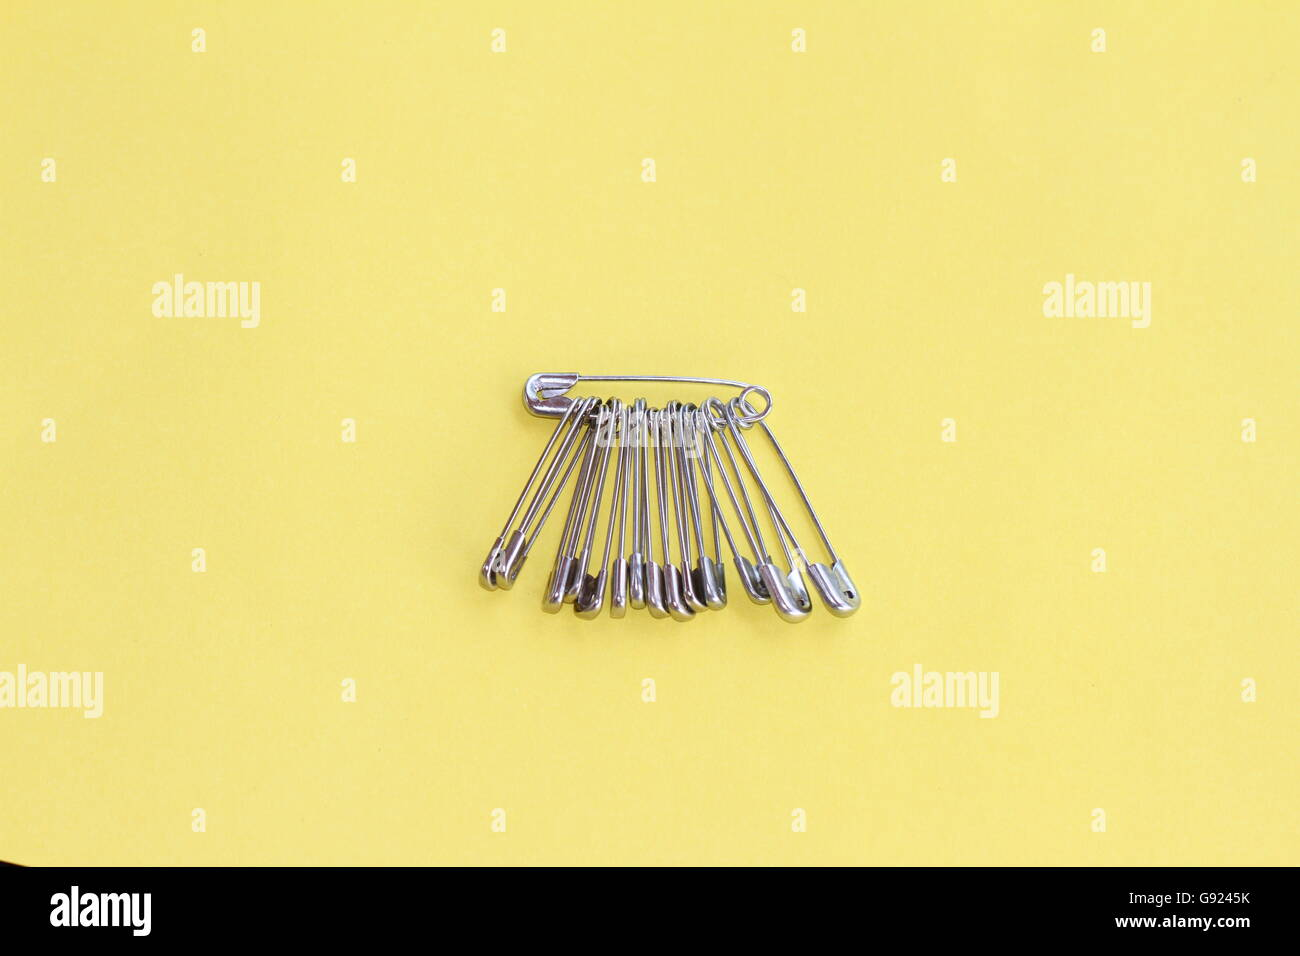 safety pins in a group a symbol of anti-hate and anti-racism after the Brexit vote - Stock Image